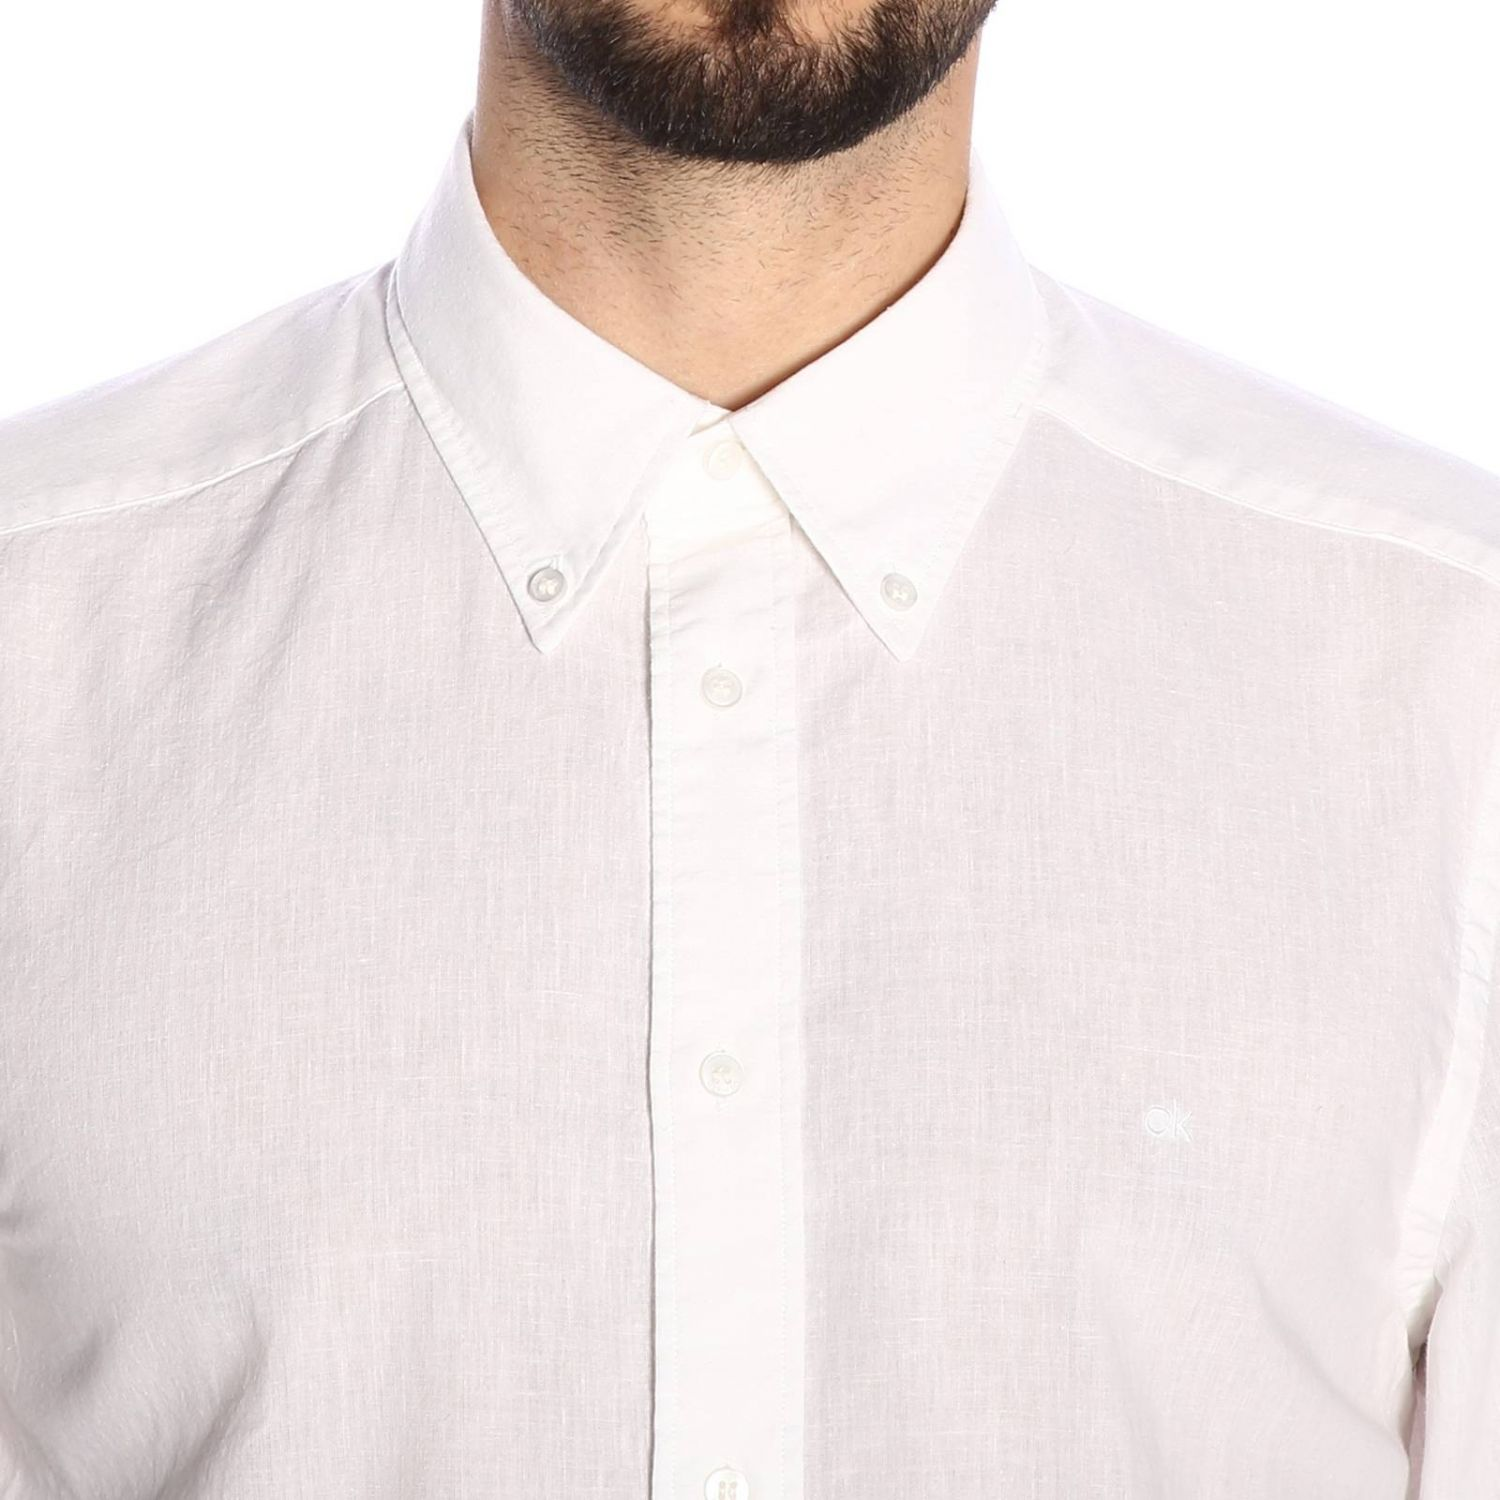 Shirt men Calvin Klein white 4